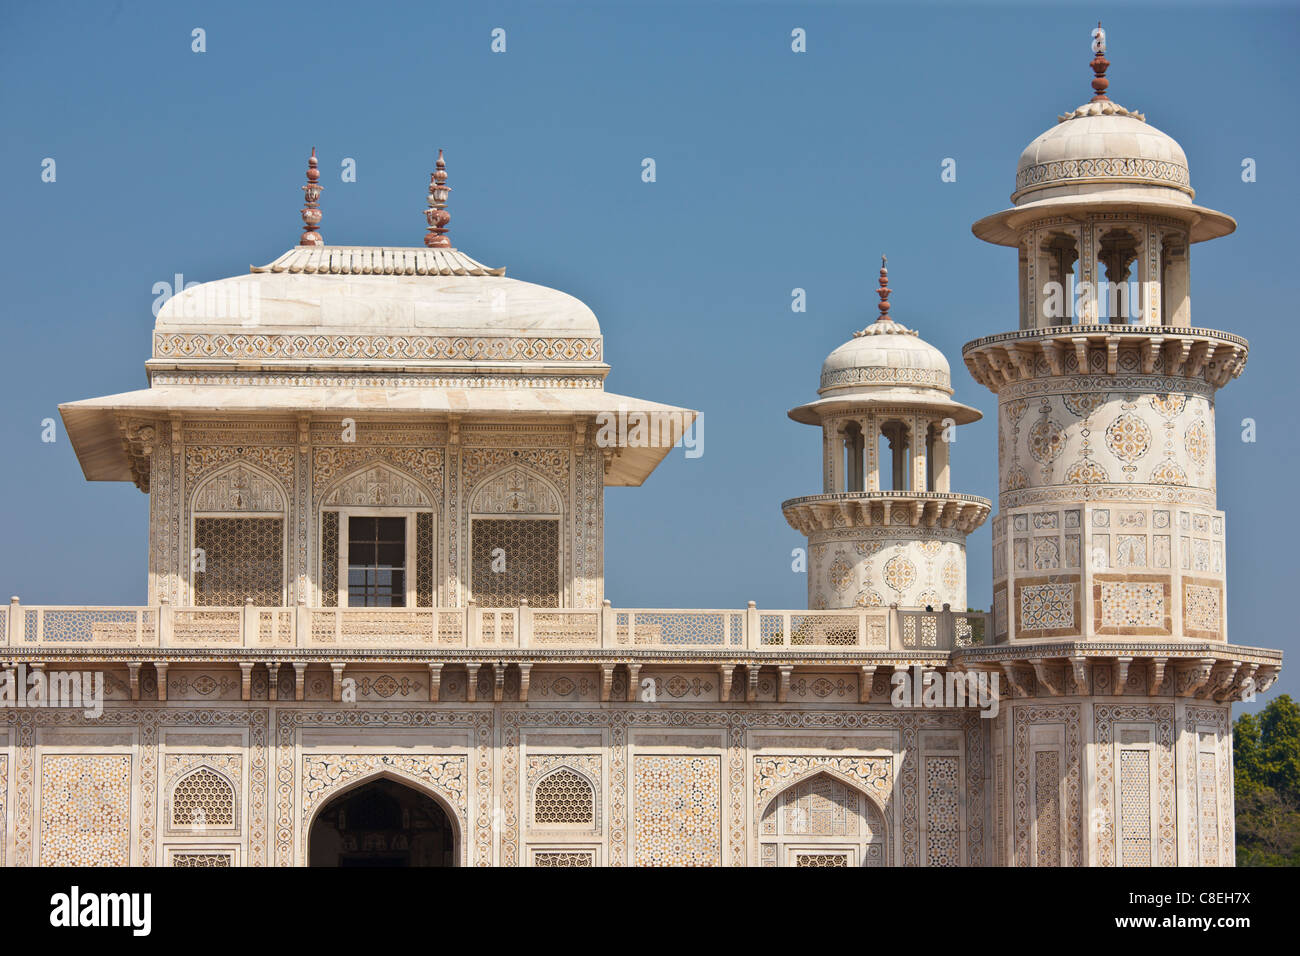 Tomb of Etimad Ud Doulah, 17th Century Mughal tomb built 1628, Agra, India - Stock Image